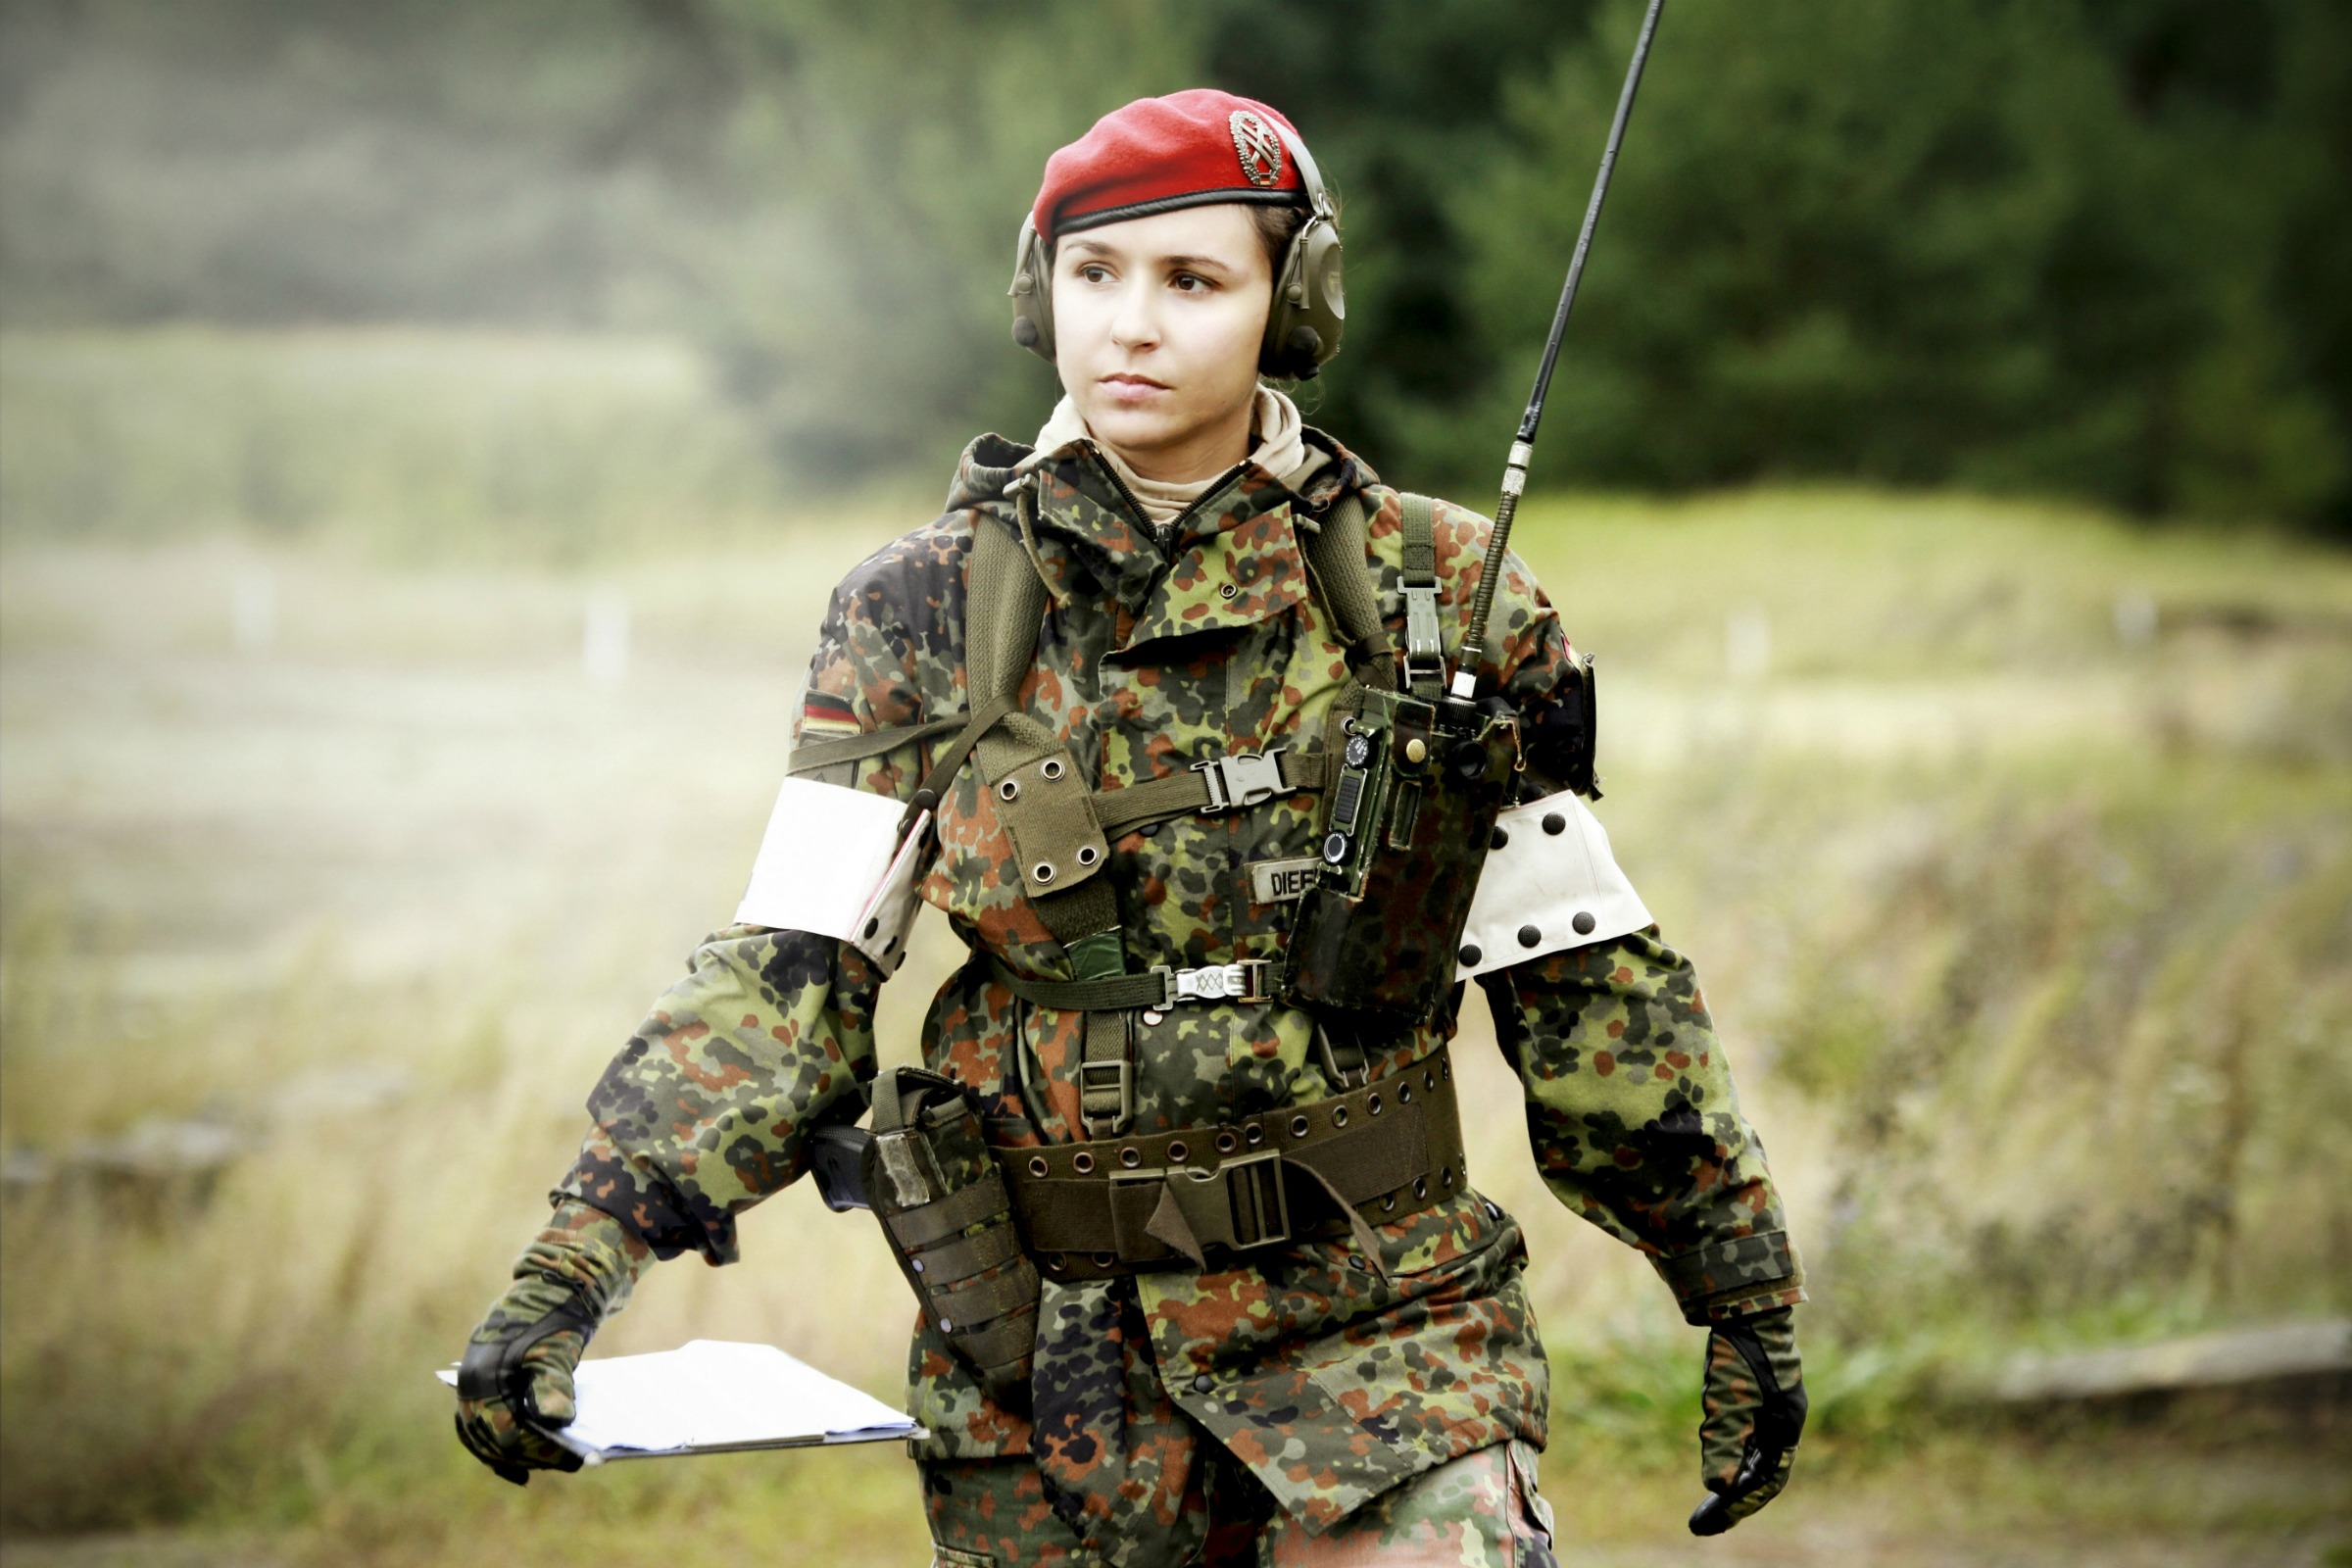 Sexy female army